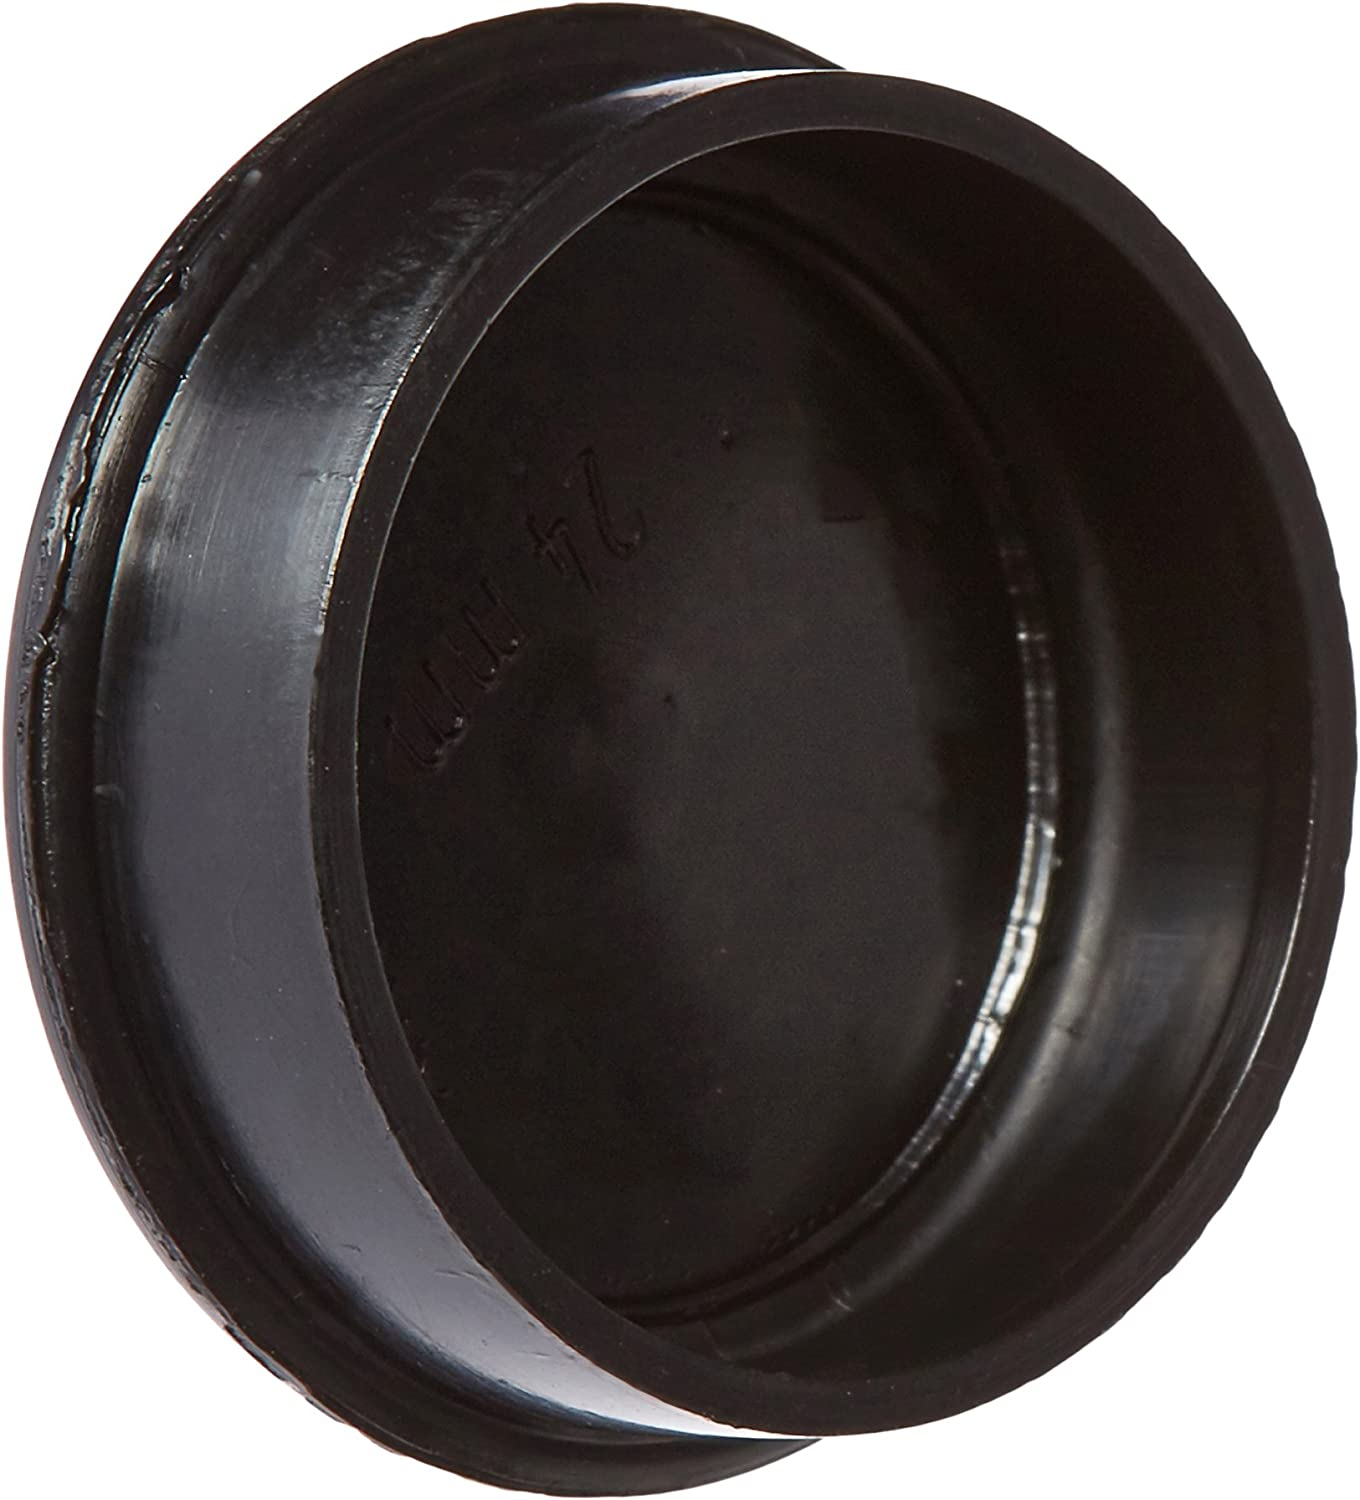 Kaiser Slip-On Lens Cap for Lenses with an Outside Diameter of 24mm  (206924)